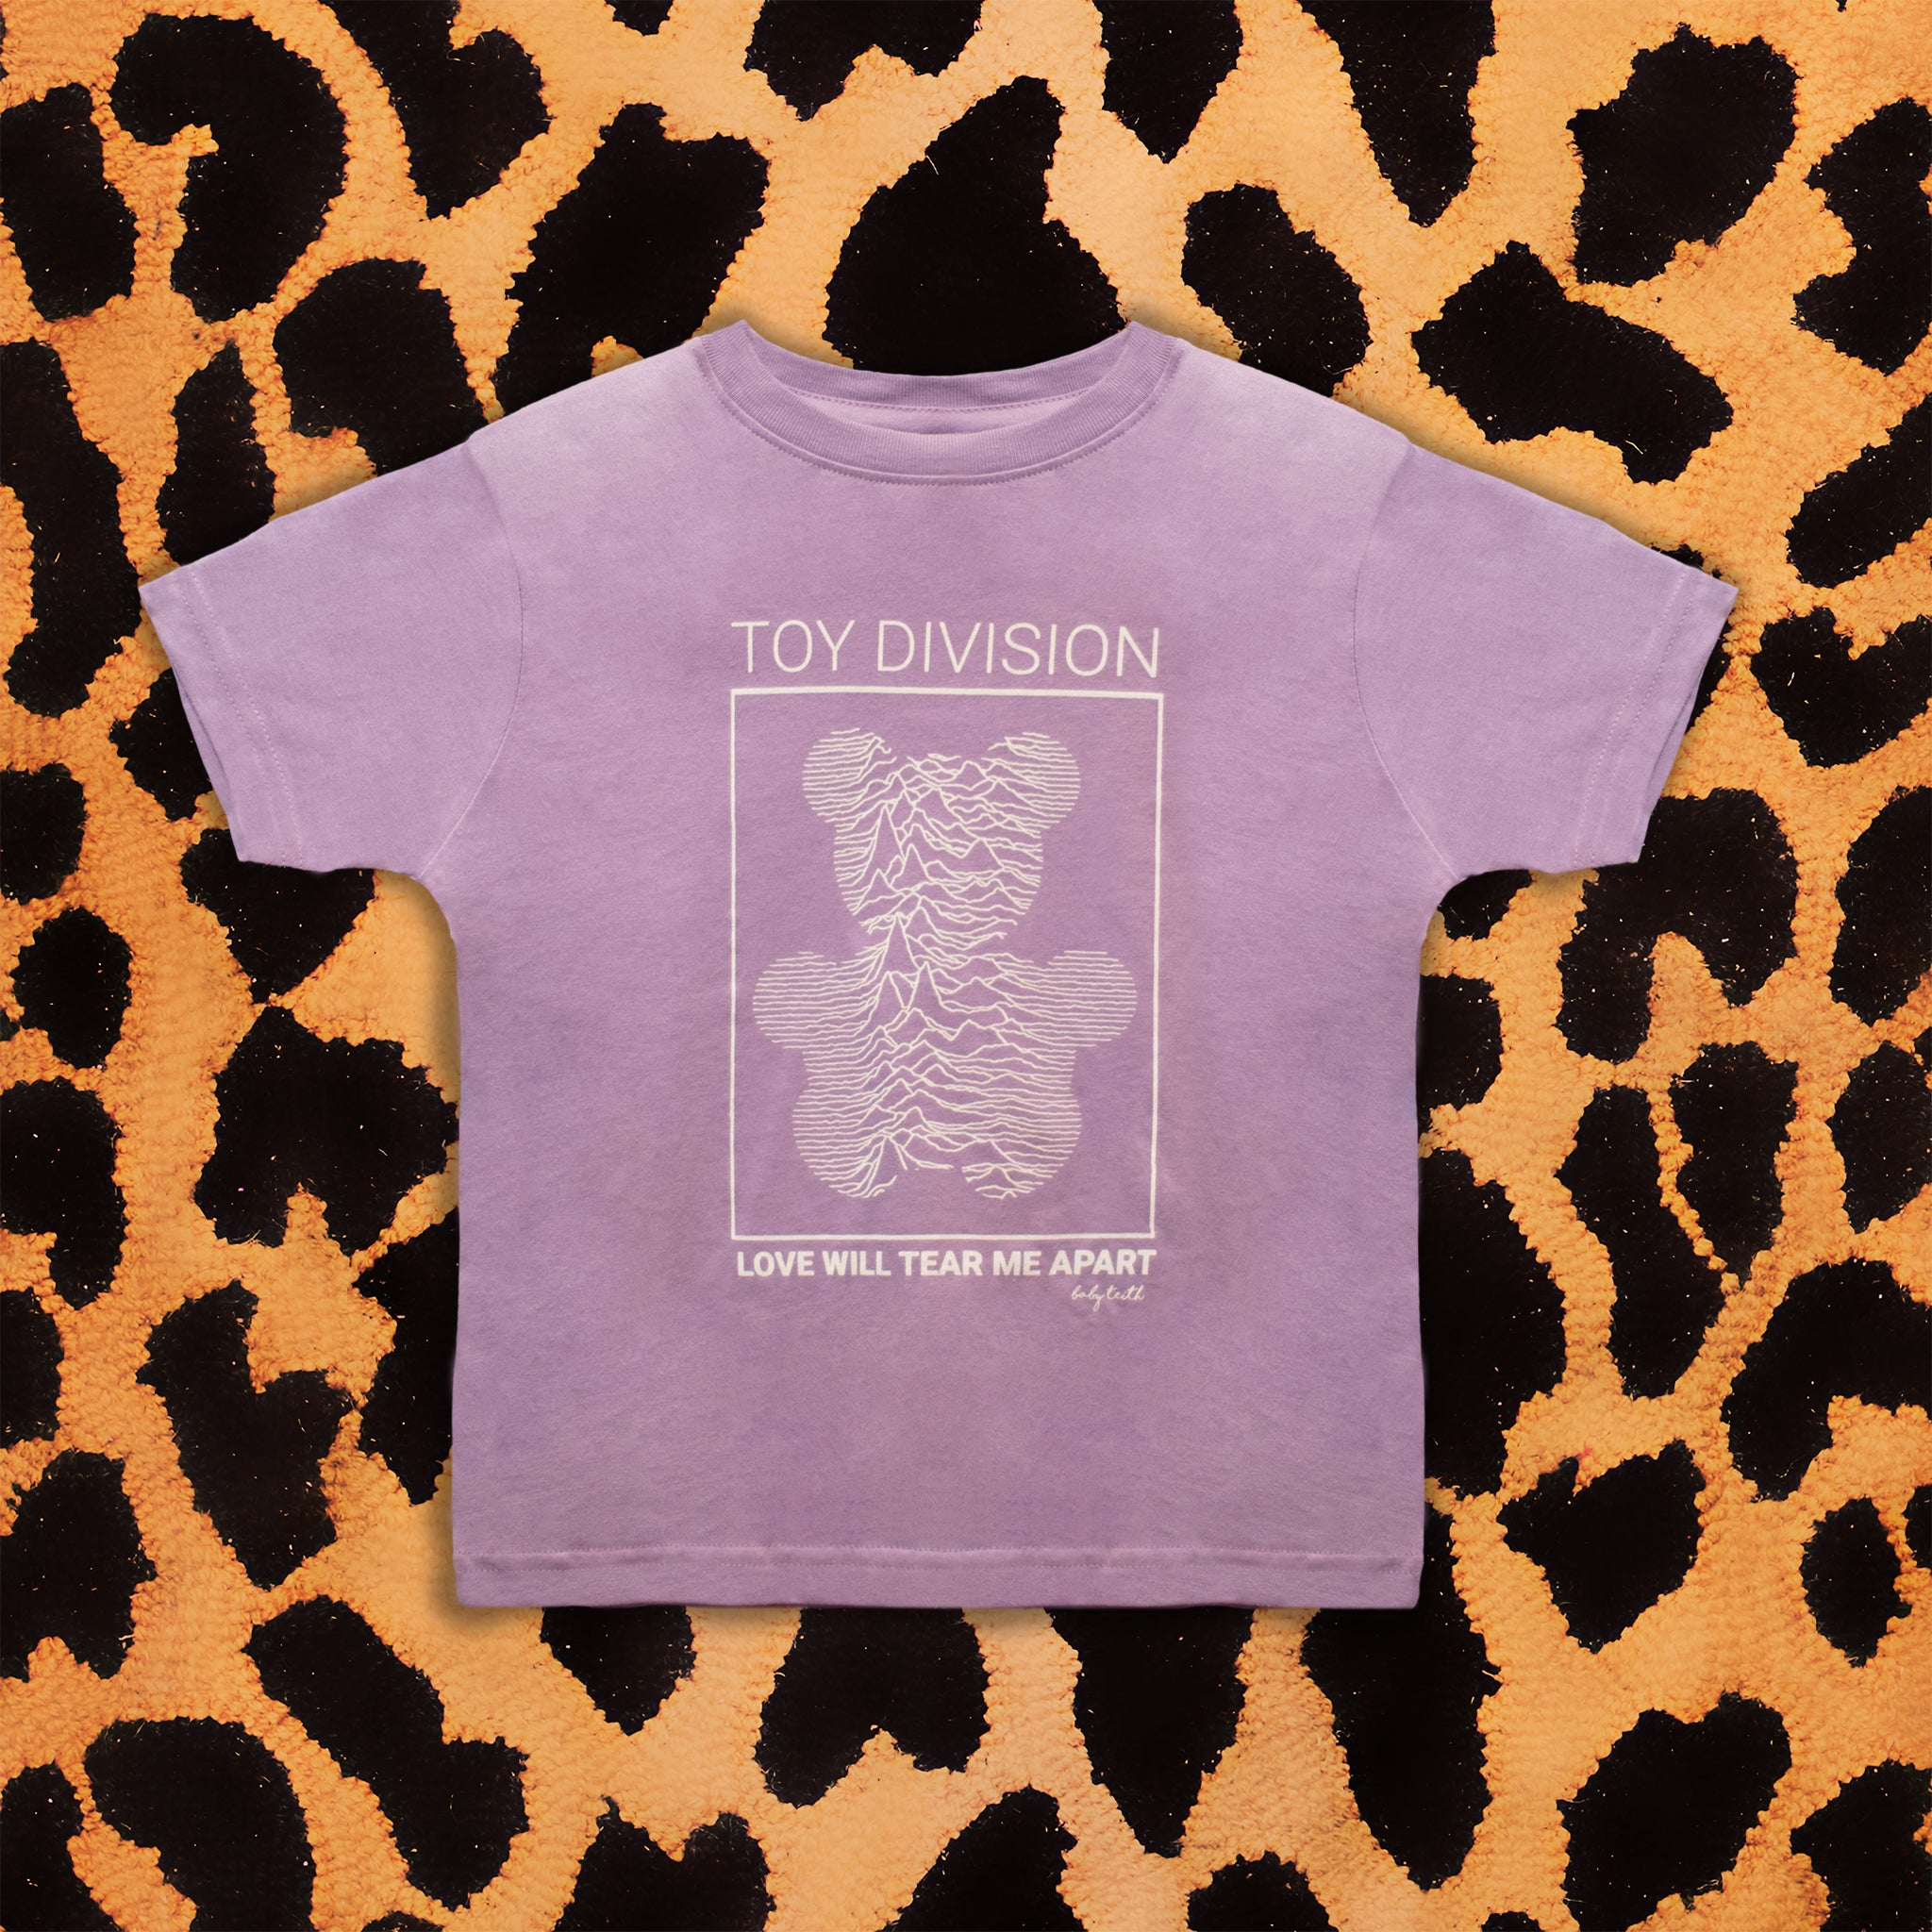 JOY DIVISION 'TOY DIVISION' KIDS T-SHIRT (LAVENDER)